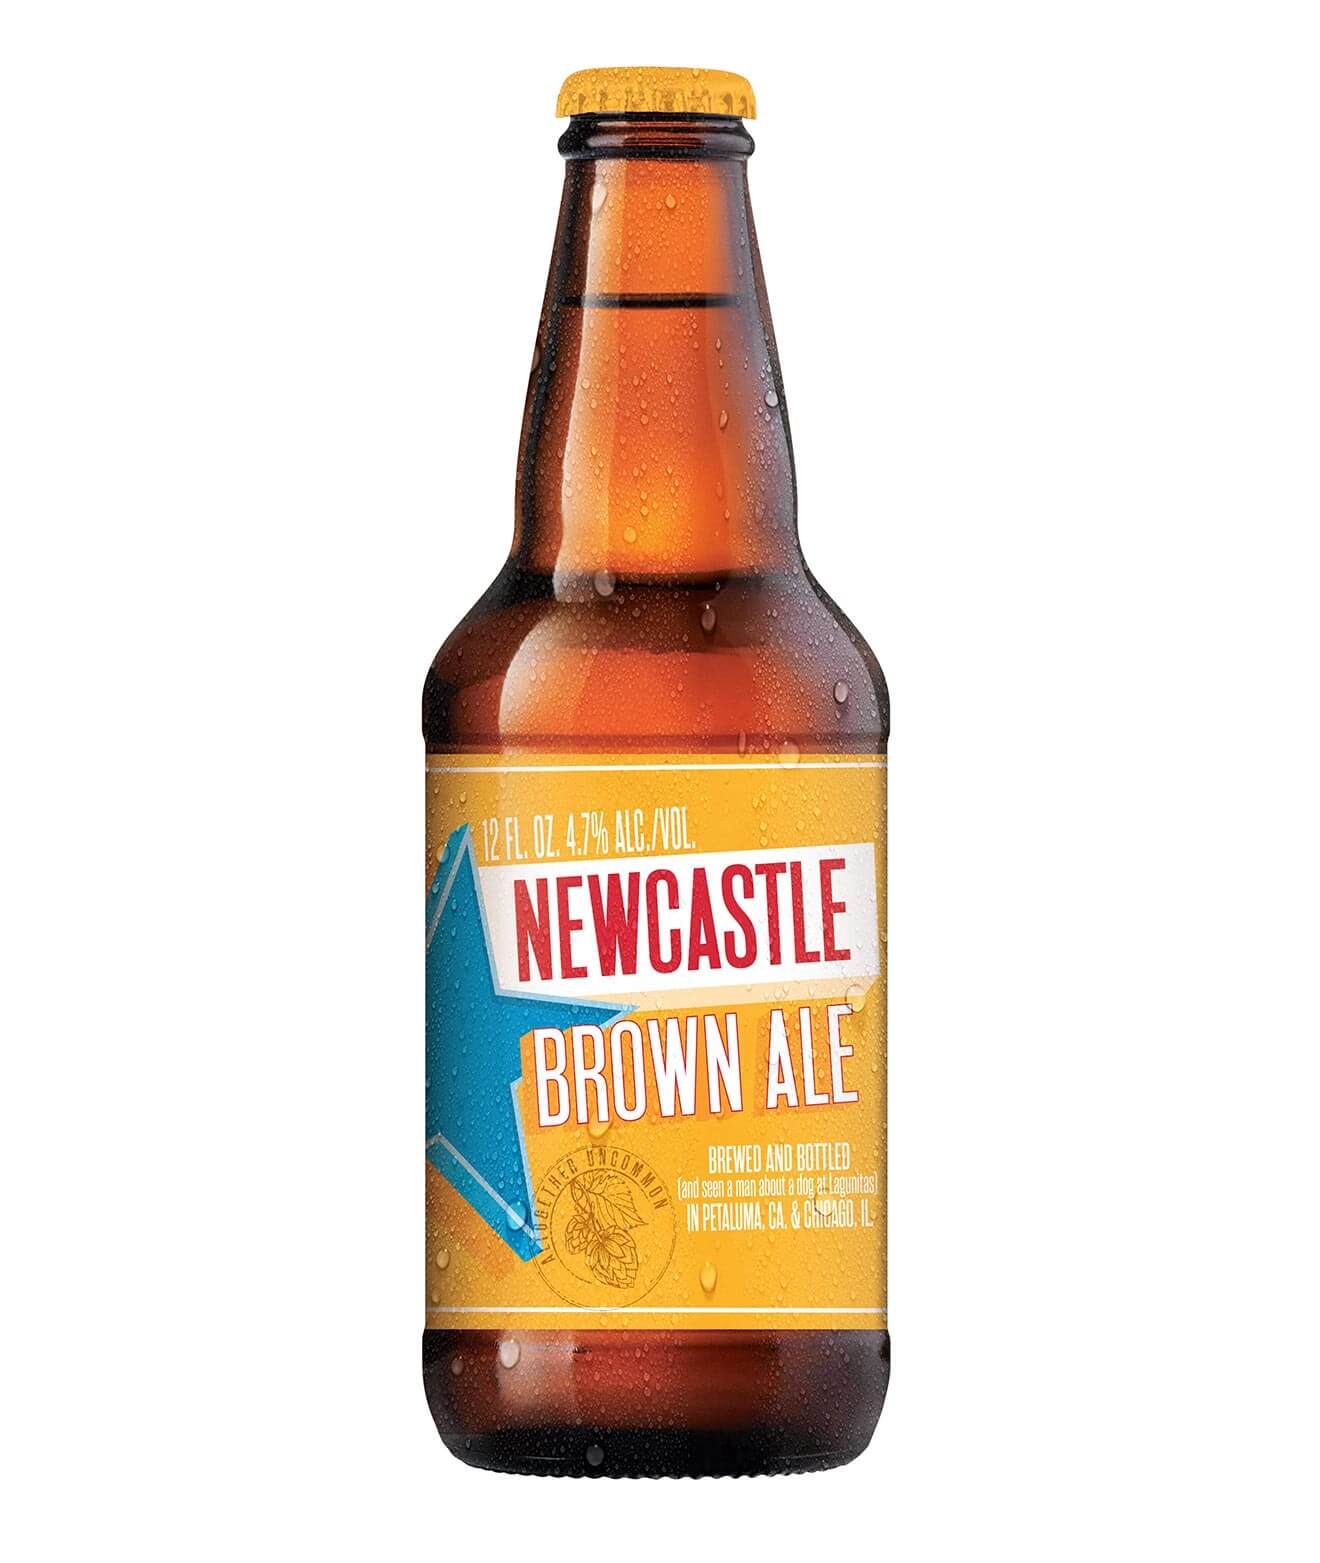 New Castle Brown Ale, bottle on white